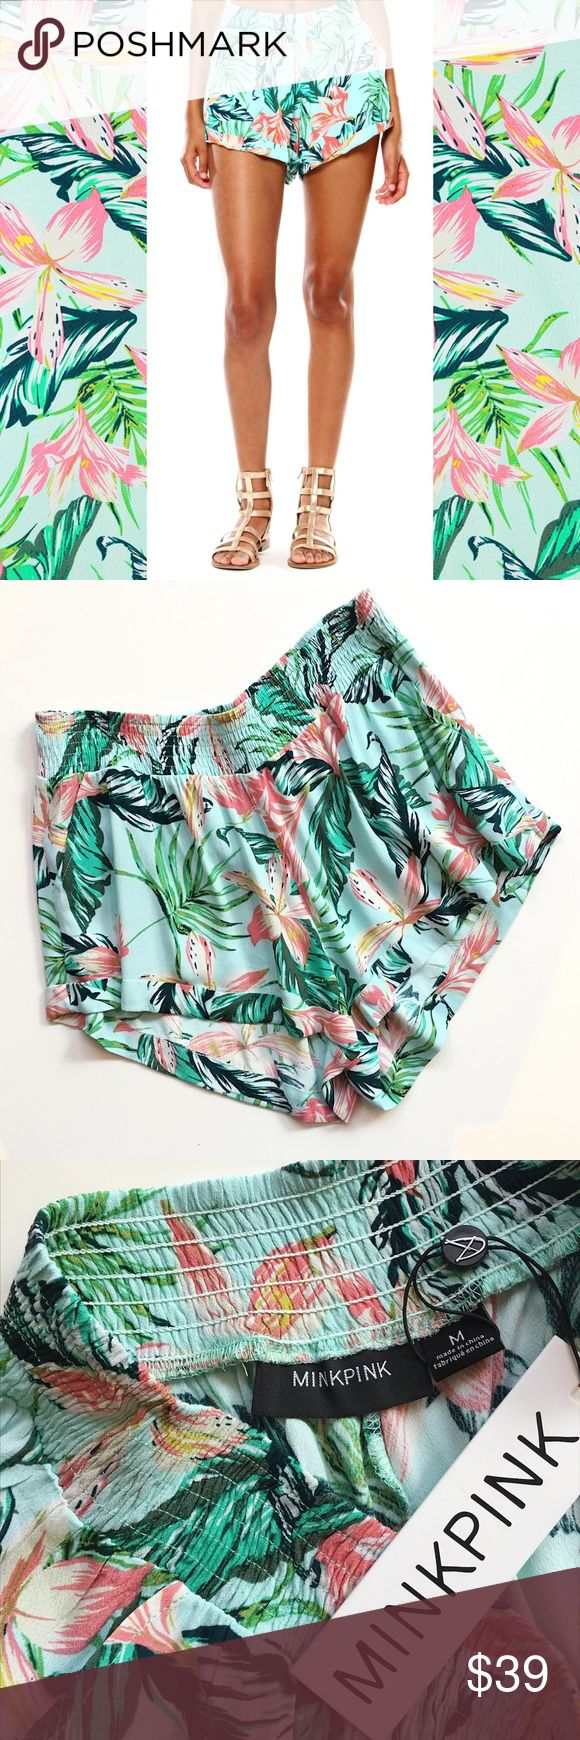 "🆕 MINKPINK Tropical Print Shorts Cute ""Sunshine Coast"" shorts from MINKPINK feature stretchy waist, hip pocket, and tropical print. True to size. Check my closet for the matching top 😉  2"" inseam 12"" rise stretchy waist, unlined 100% viscose hand wash cold; hang dry imported MINKPINK Shorts"